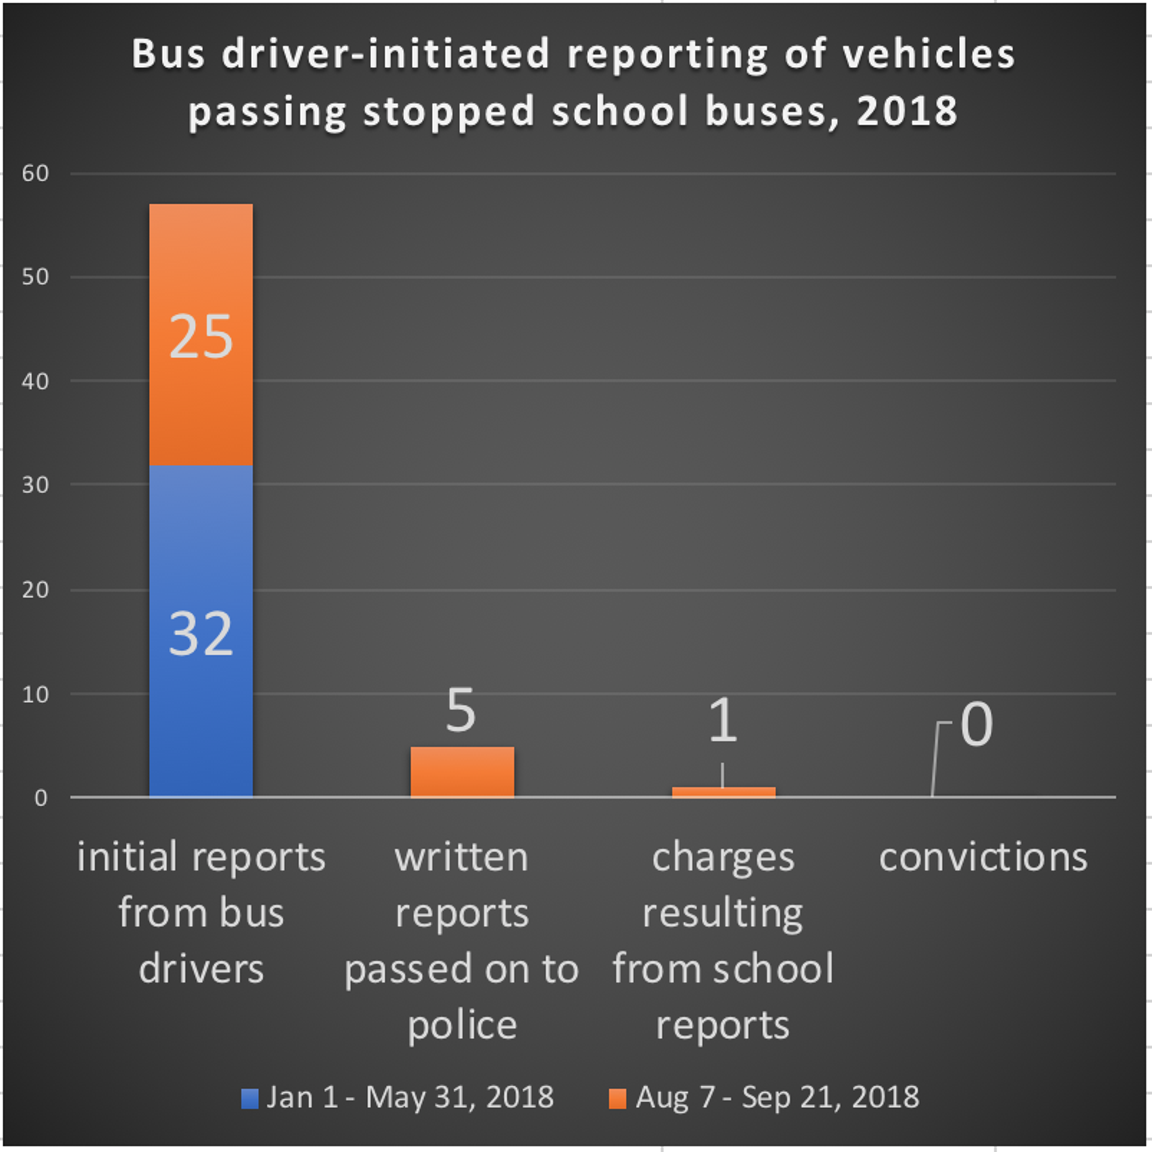 In the first seven weeks of this school year, bus drivers filed 25 verbal reports of incidents of cars passing stopped buses, putting this fall on a pace for more than twice as many incidents as the spring term. After 57 reports were filed, one finally resulted in a charge of reckless driving on September 24, 2018.